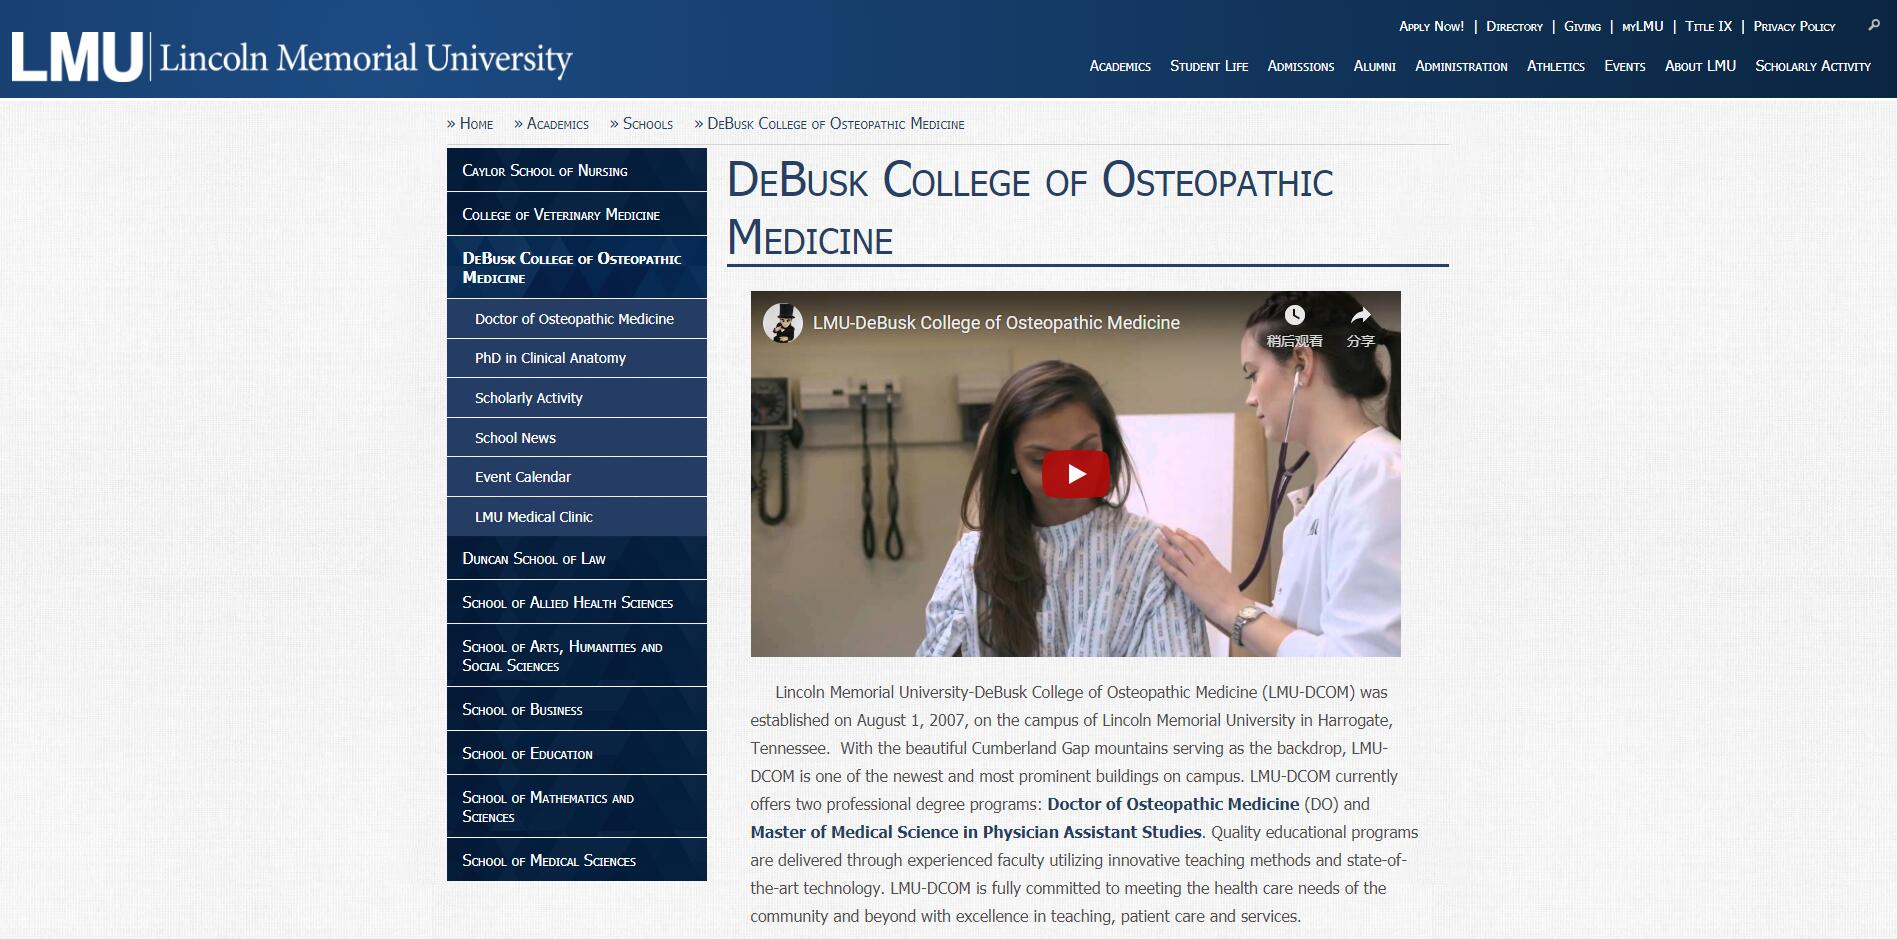 The DeBusk College of Osteopathic Medicine at Lincoln Memorial University